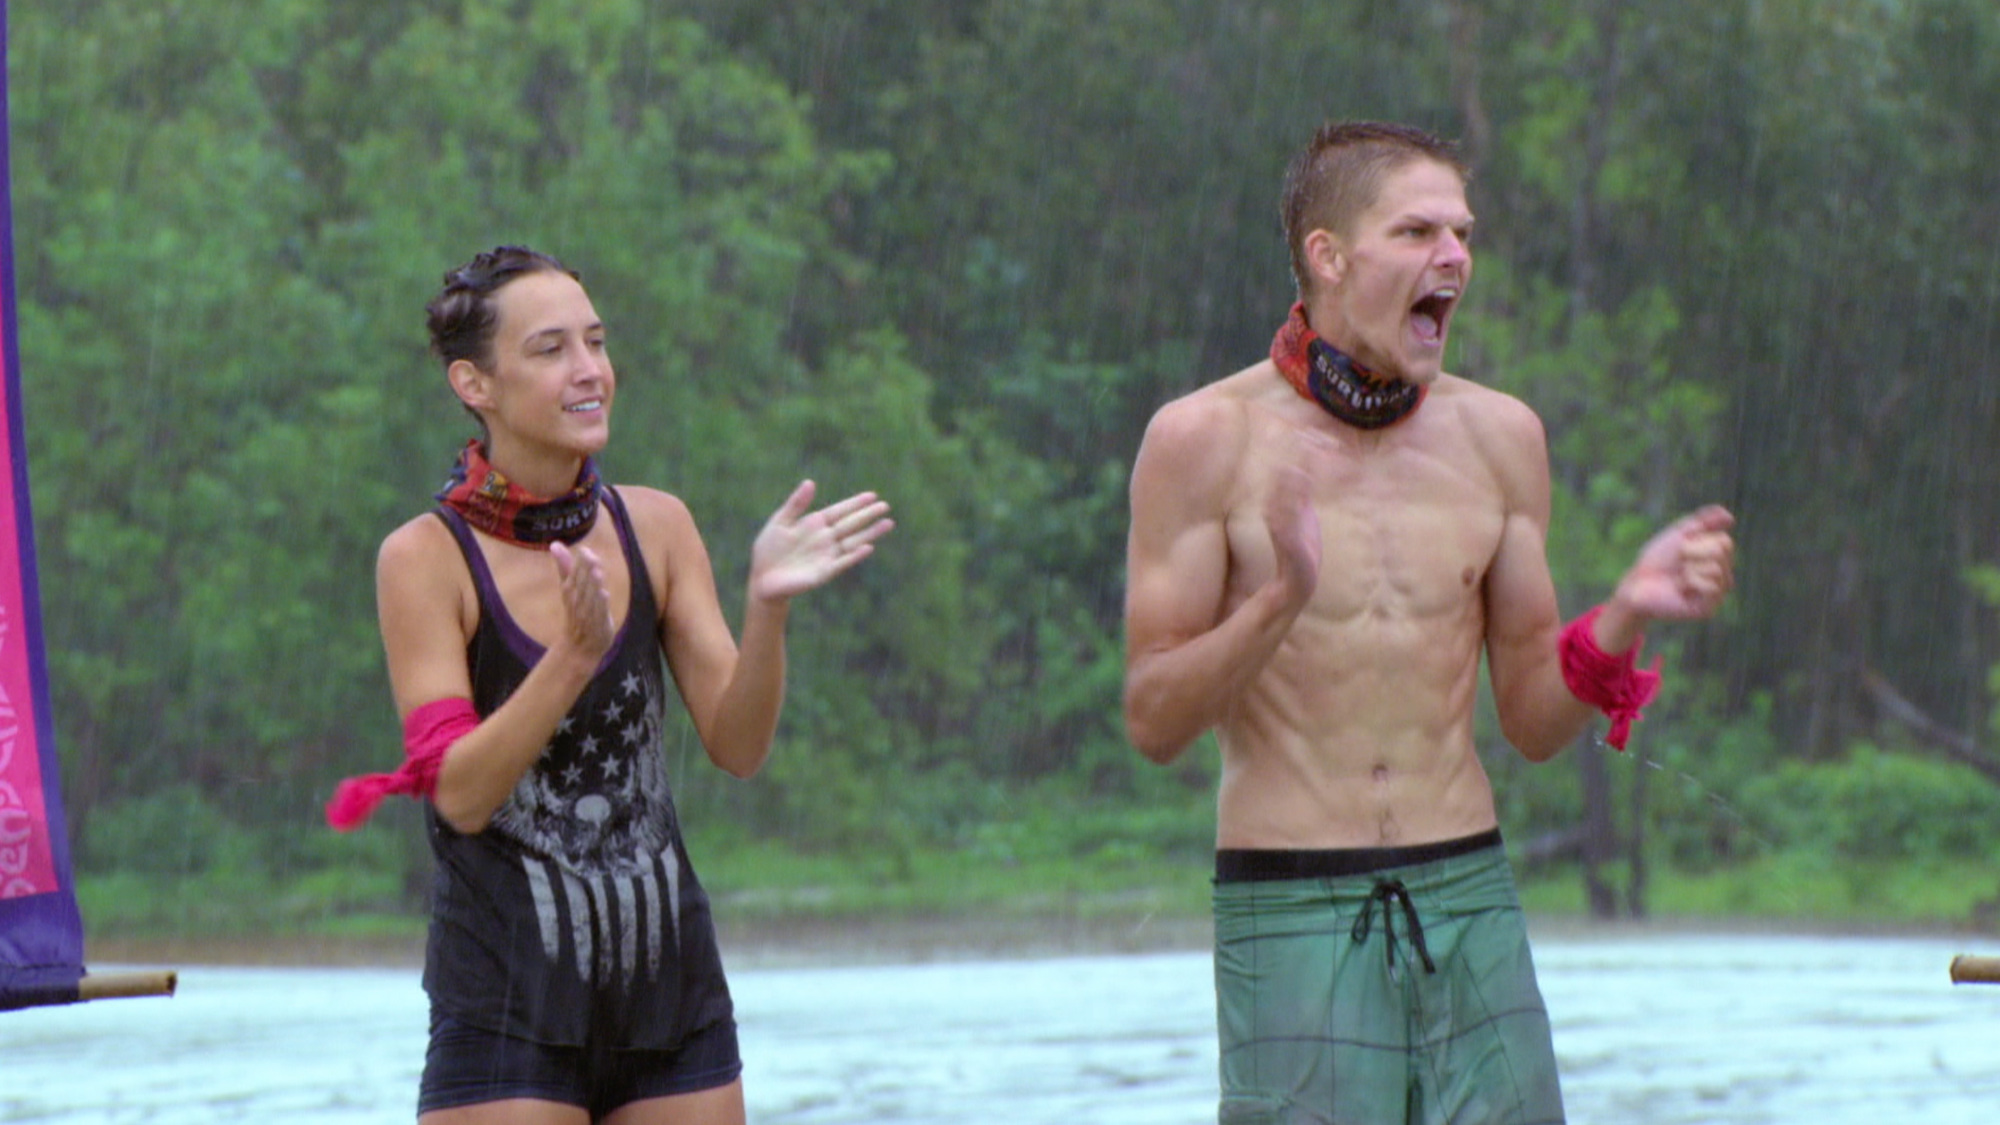 Ciera Eastin and Spencer Bledsoe cheer during challenge on Survivor: Second Chance